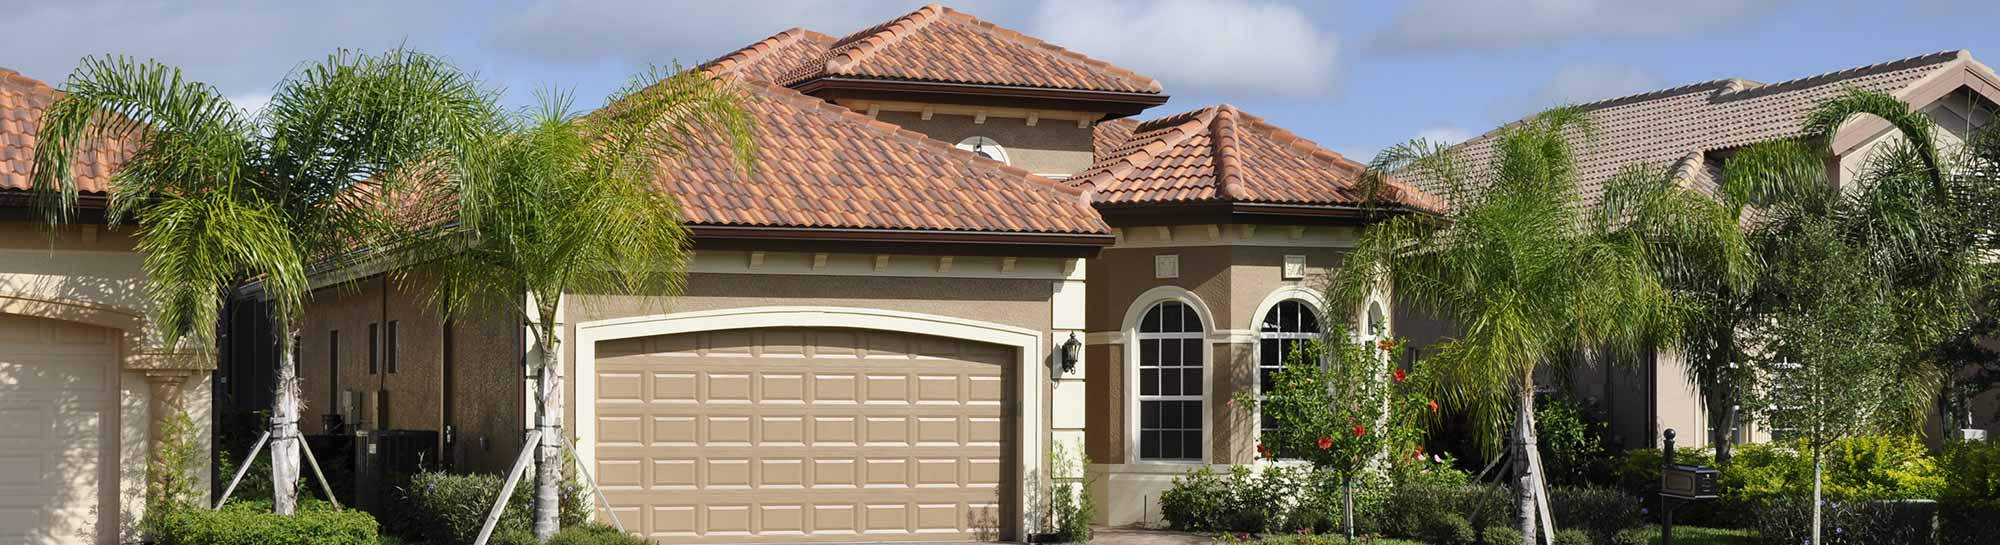 Garage Door Service Repair Garage Door Opener West Palm Beach Fl